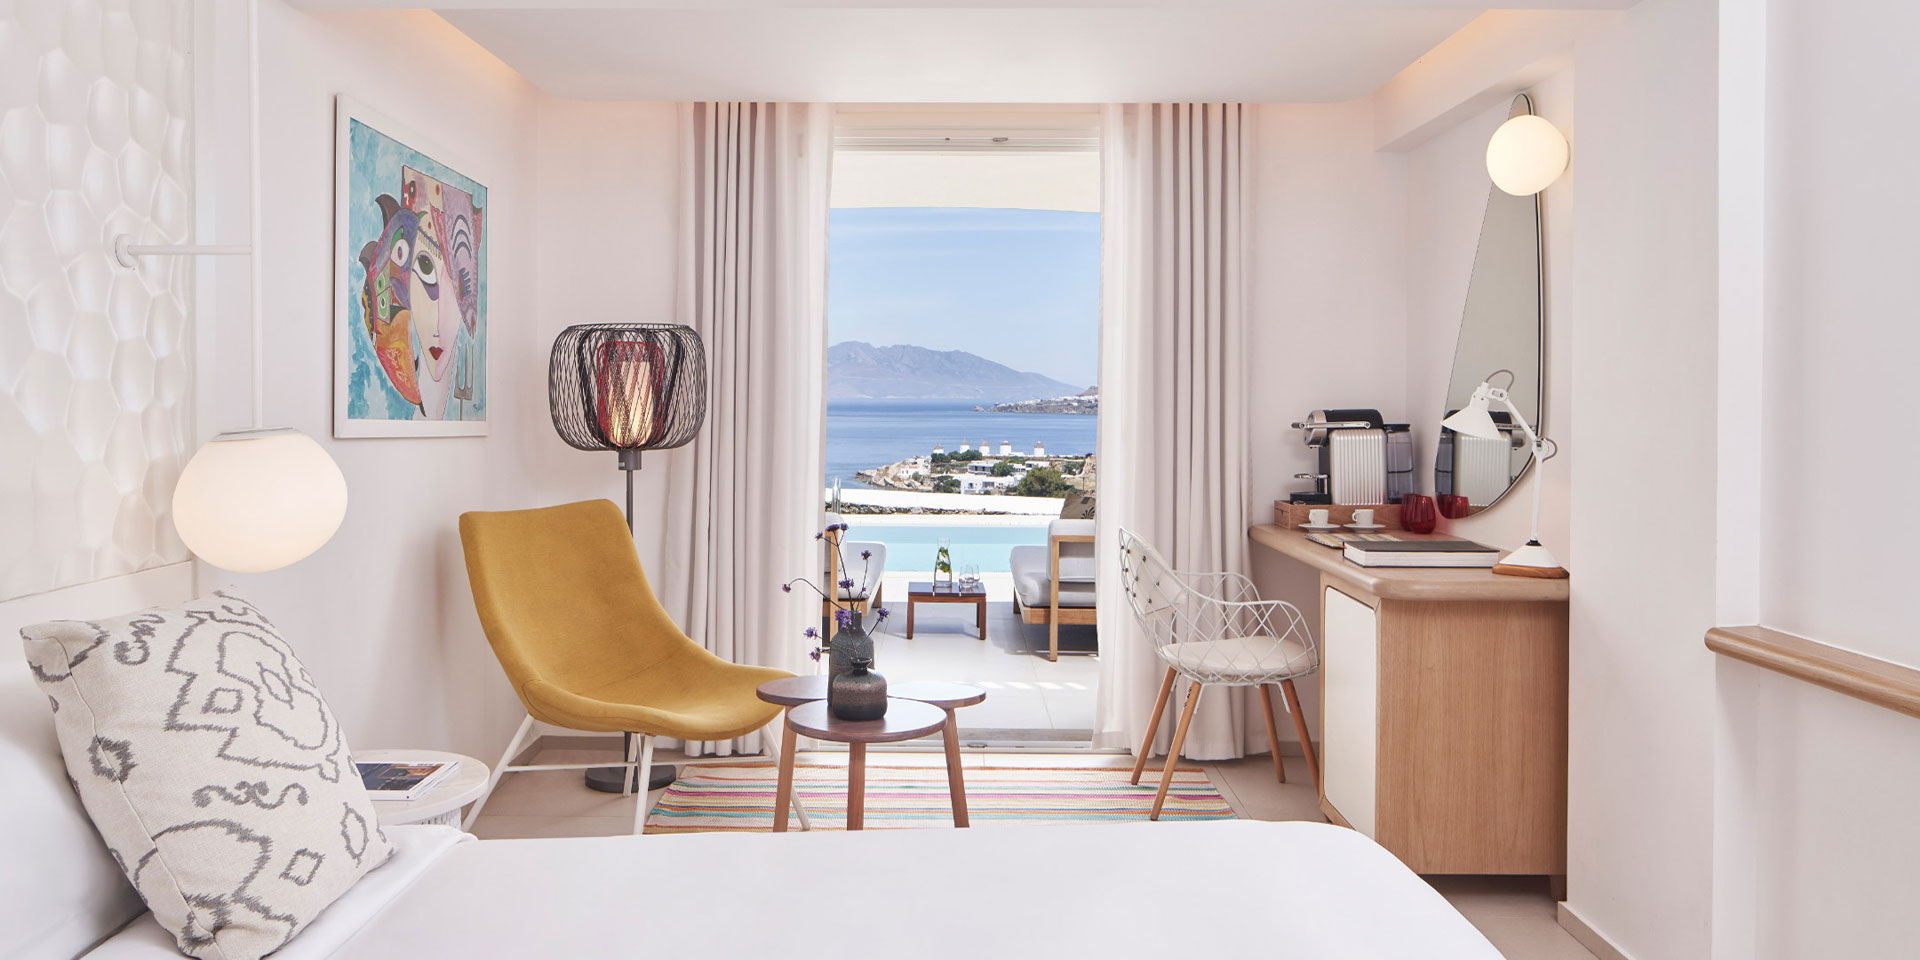 MyconianKyma-Mykonos-Greece-Europe-rooms.jpg